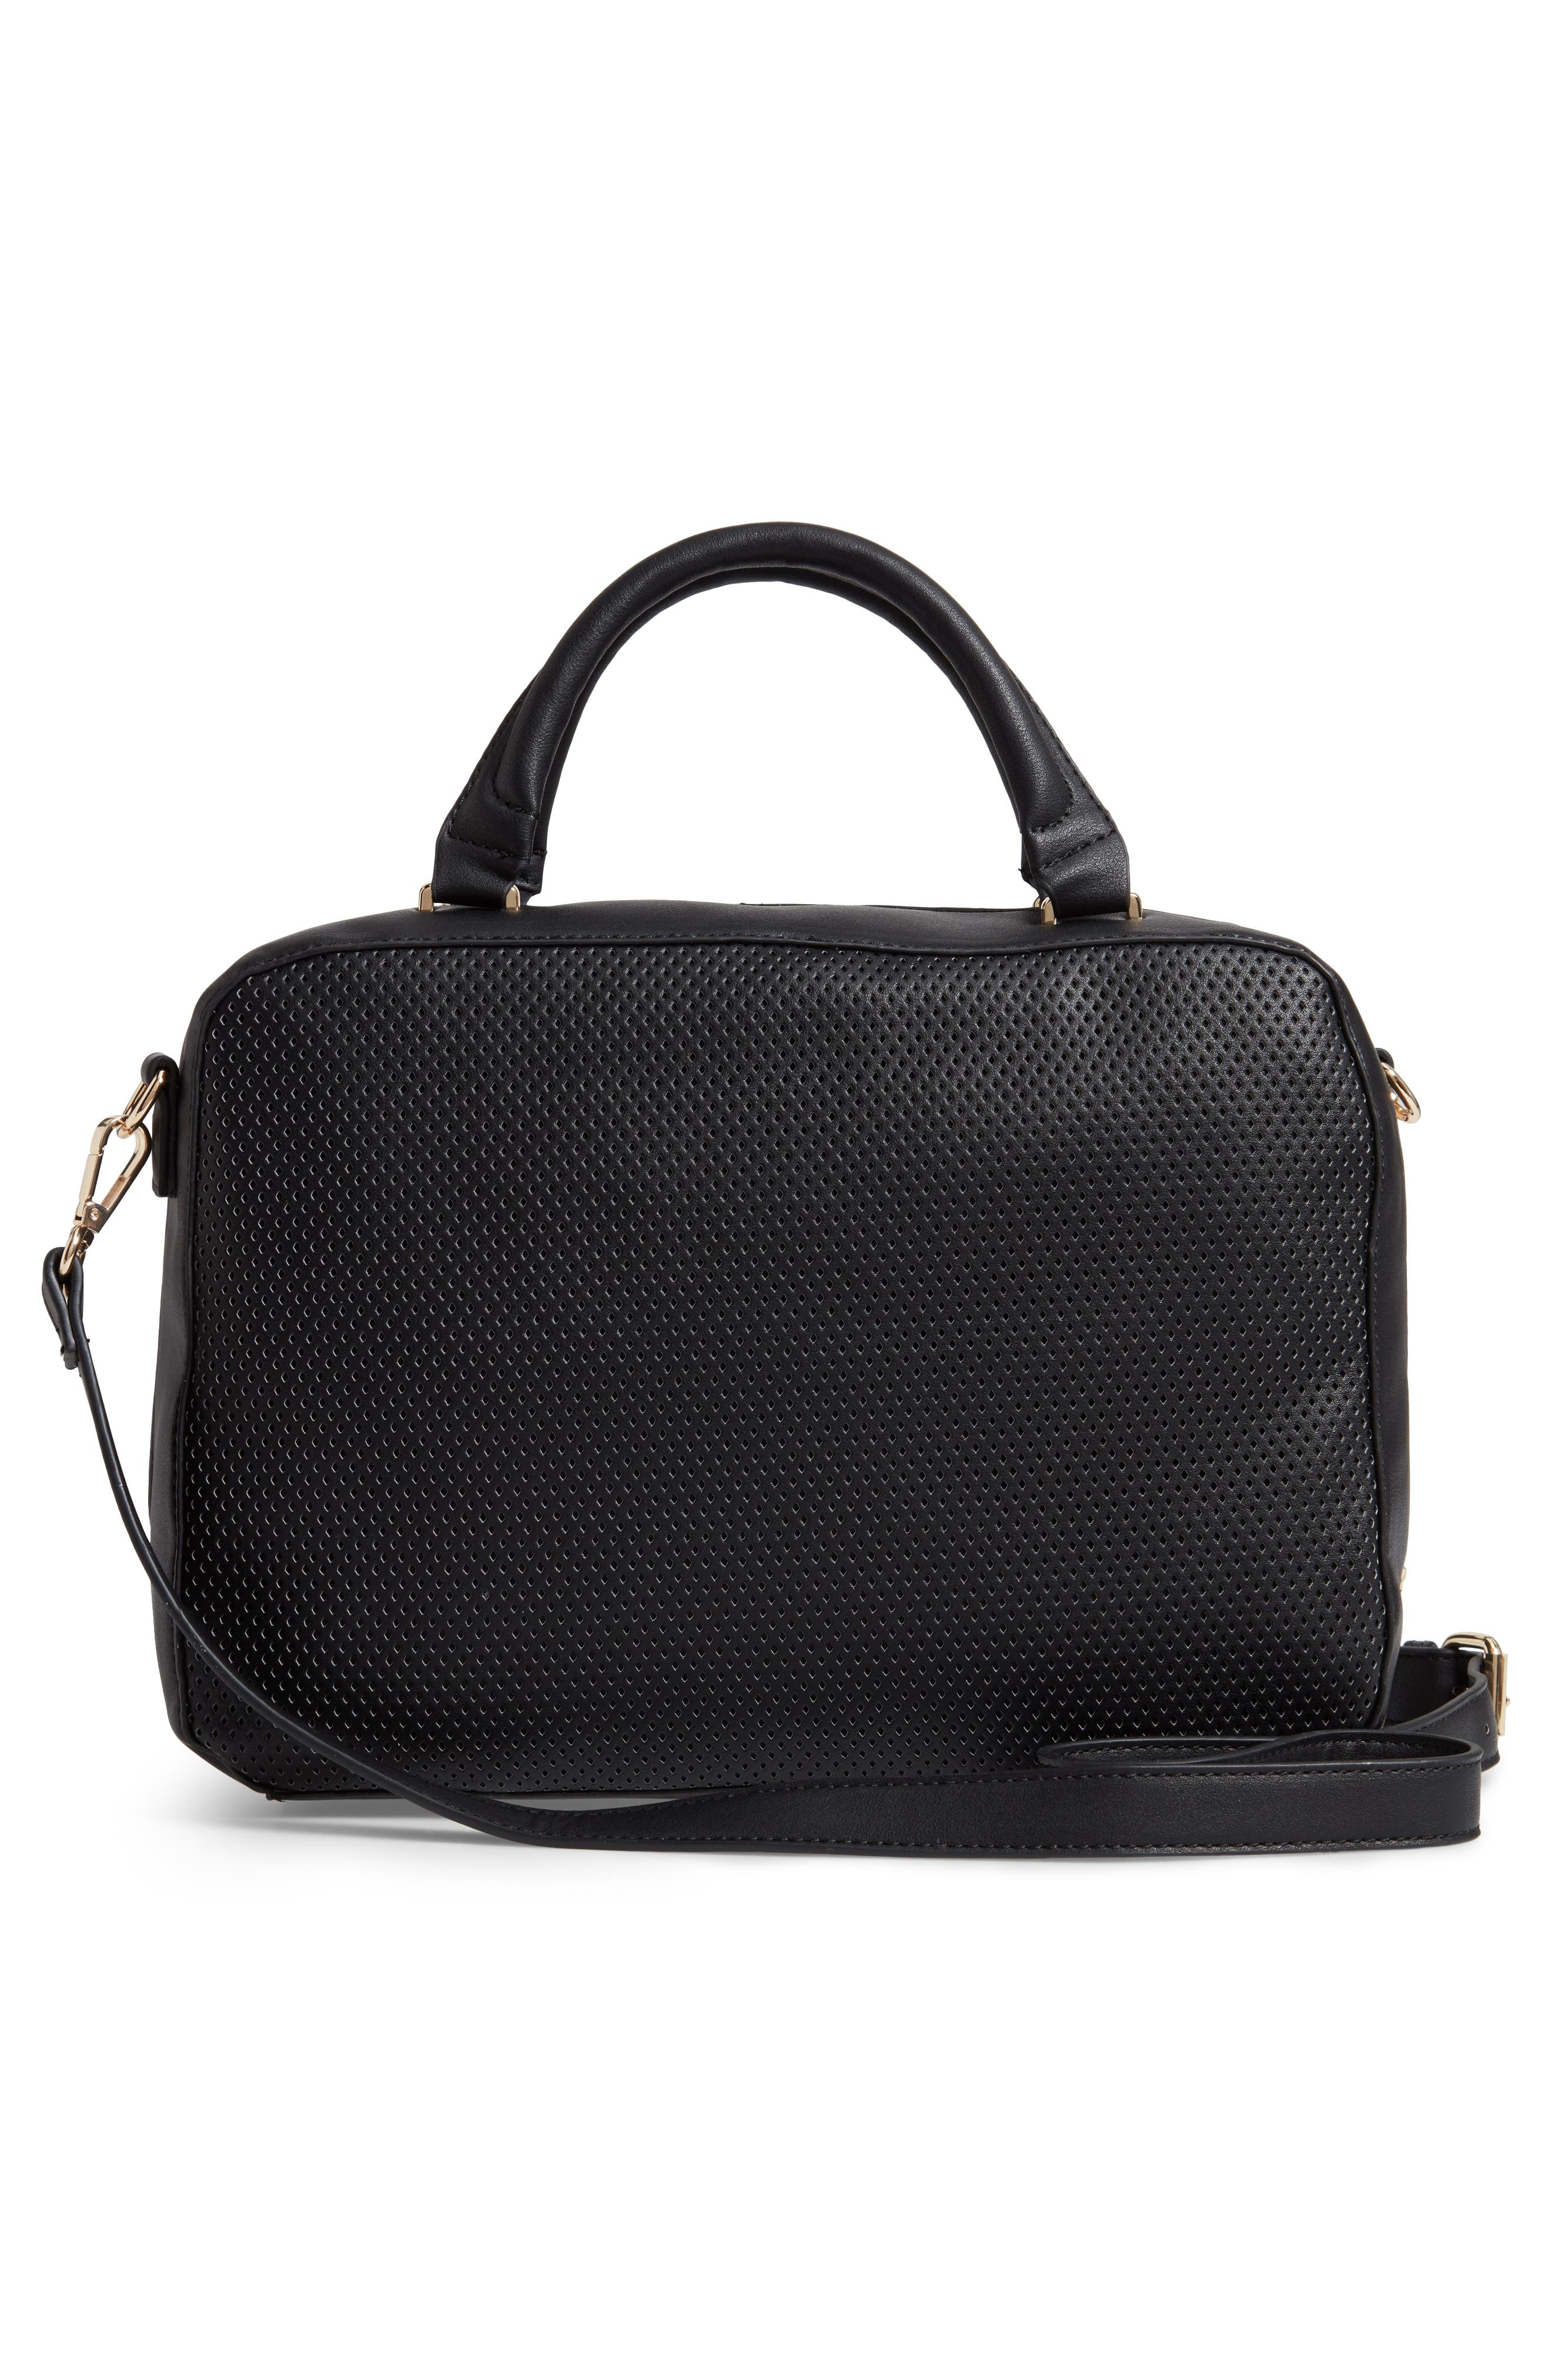 Kaylee Perforated Faux Leather Satchel,                             Alternate thumbnail 3, color,                             001